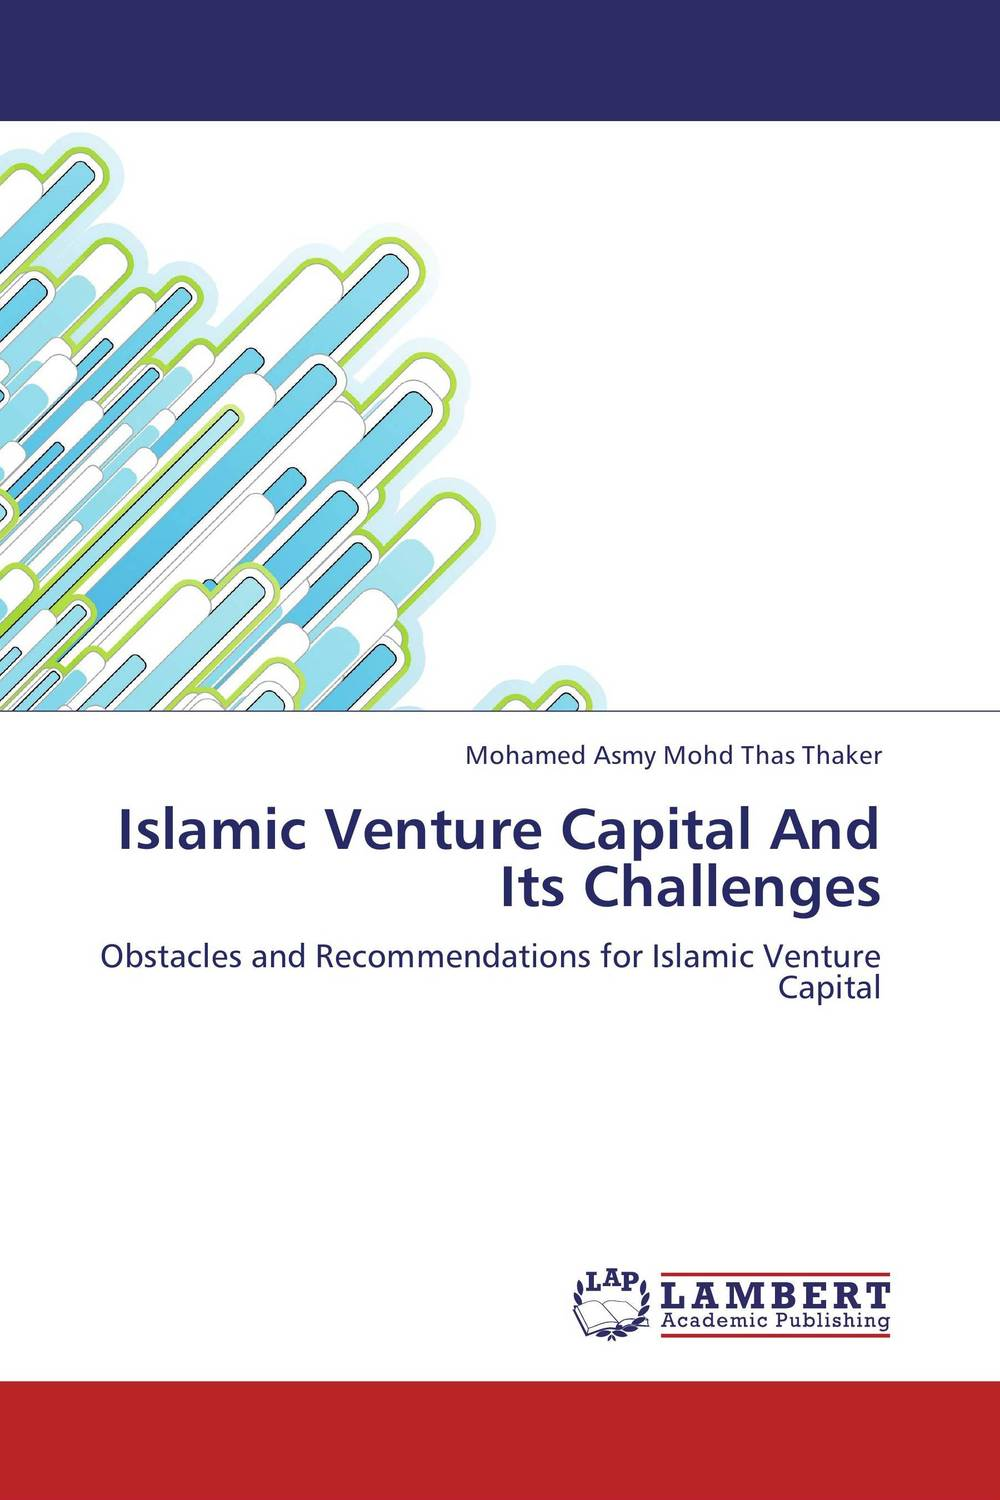 Islamic Venture Capital And Its Challenges alexander haislip essentials of venture capital